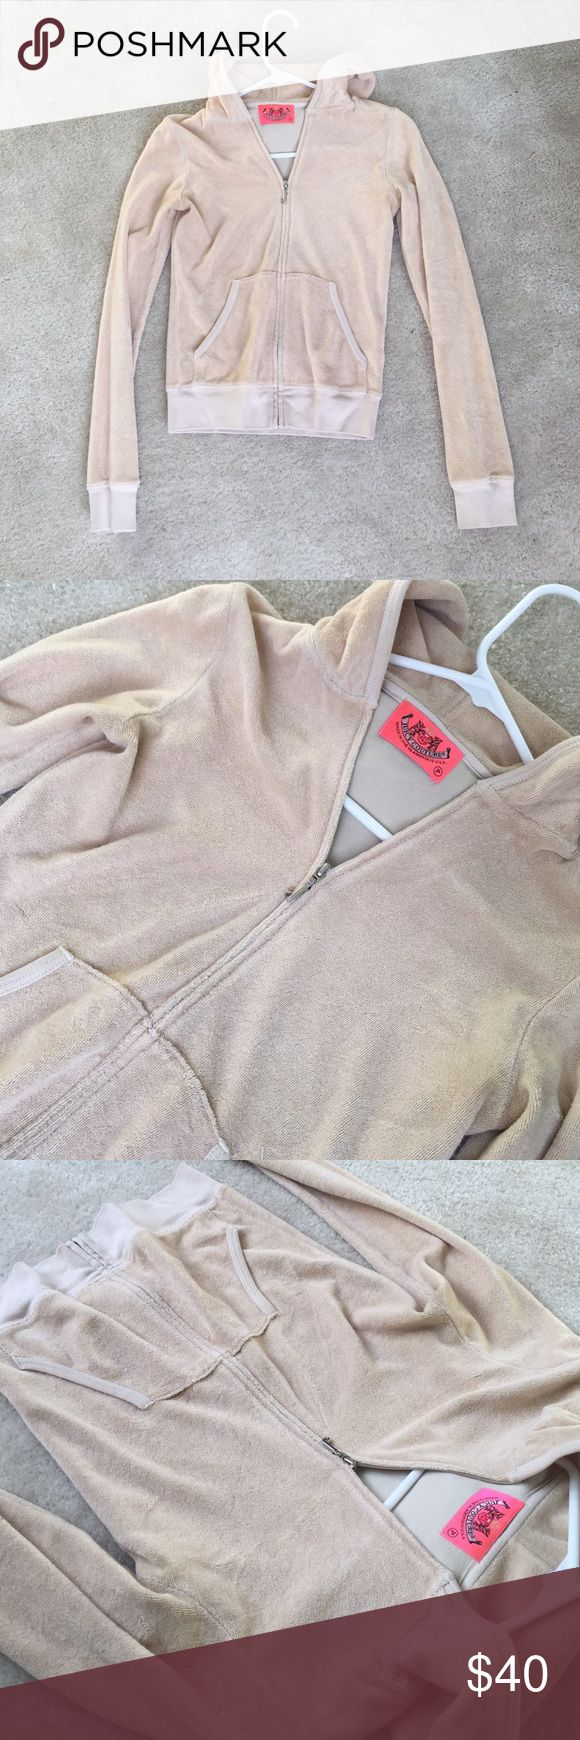 JUICY COUTURE petite zip up JUICY COUTURE petite zip up hoodie Juicy Couture Tops Sweatshirts & Hoodies